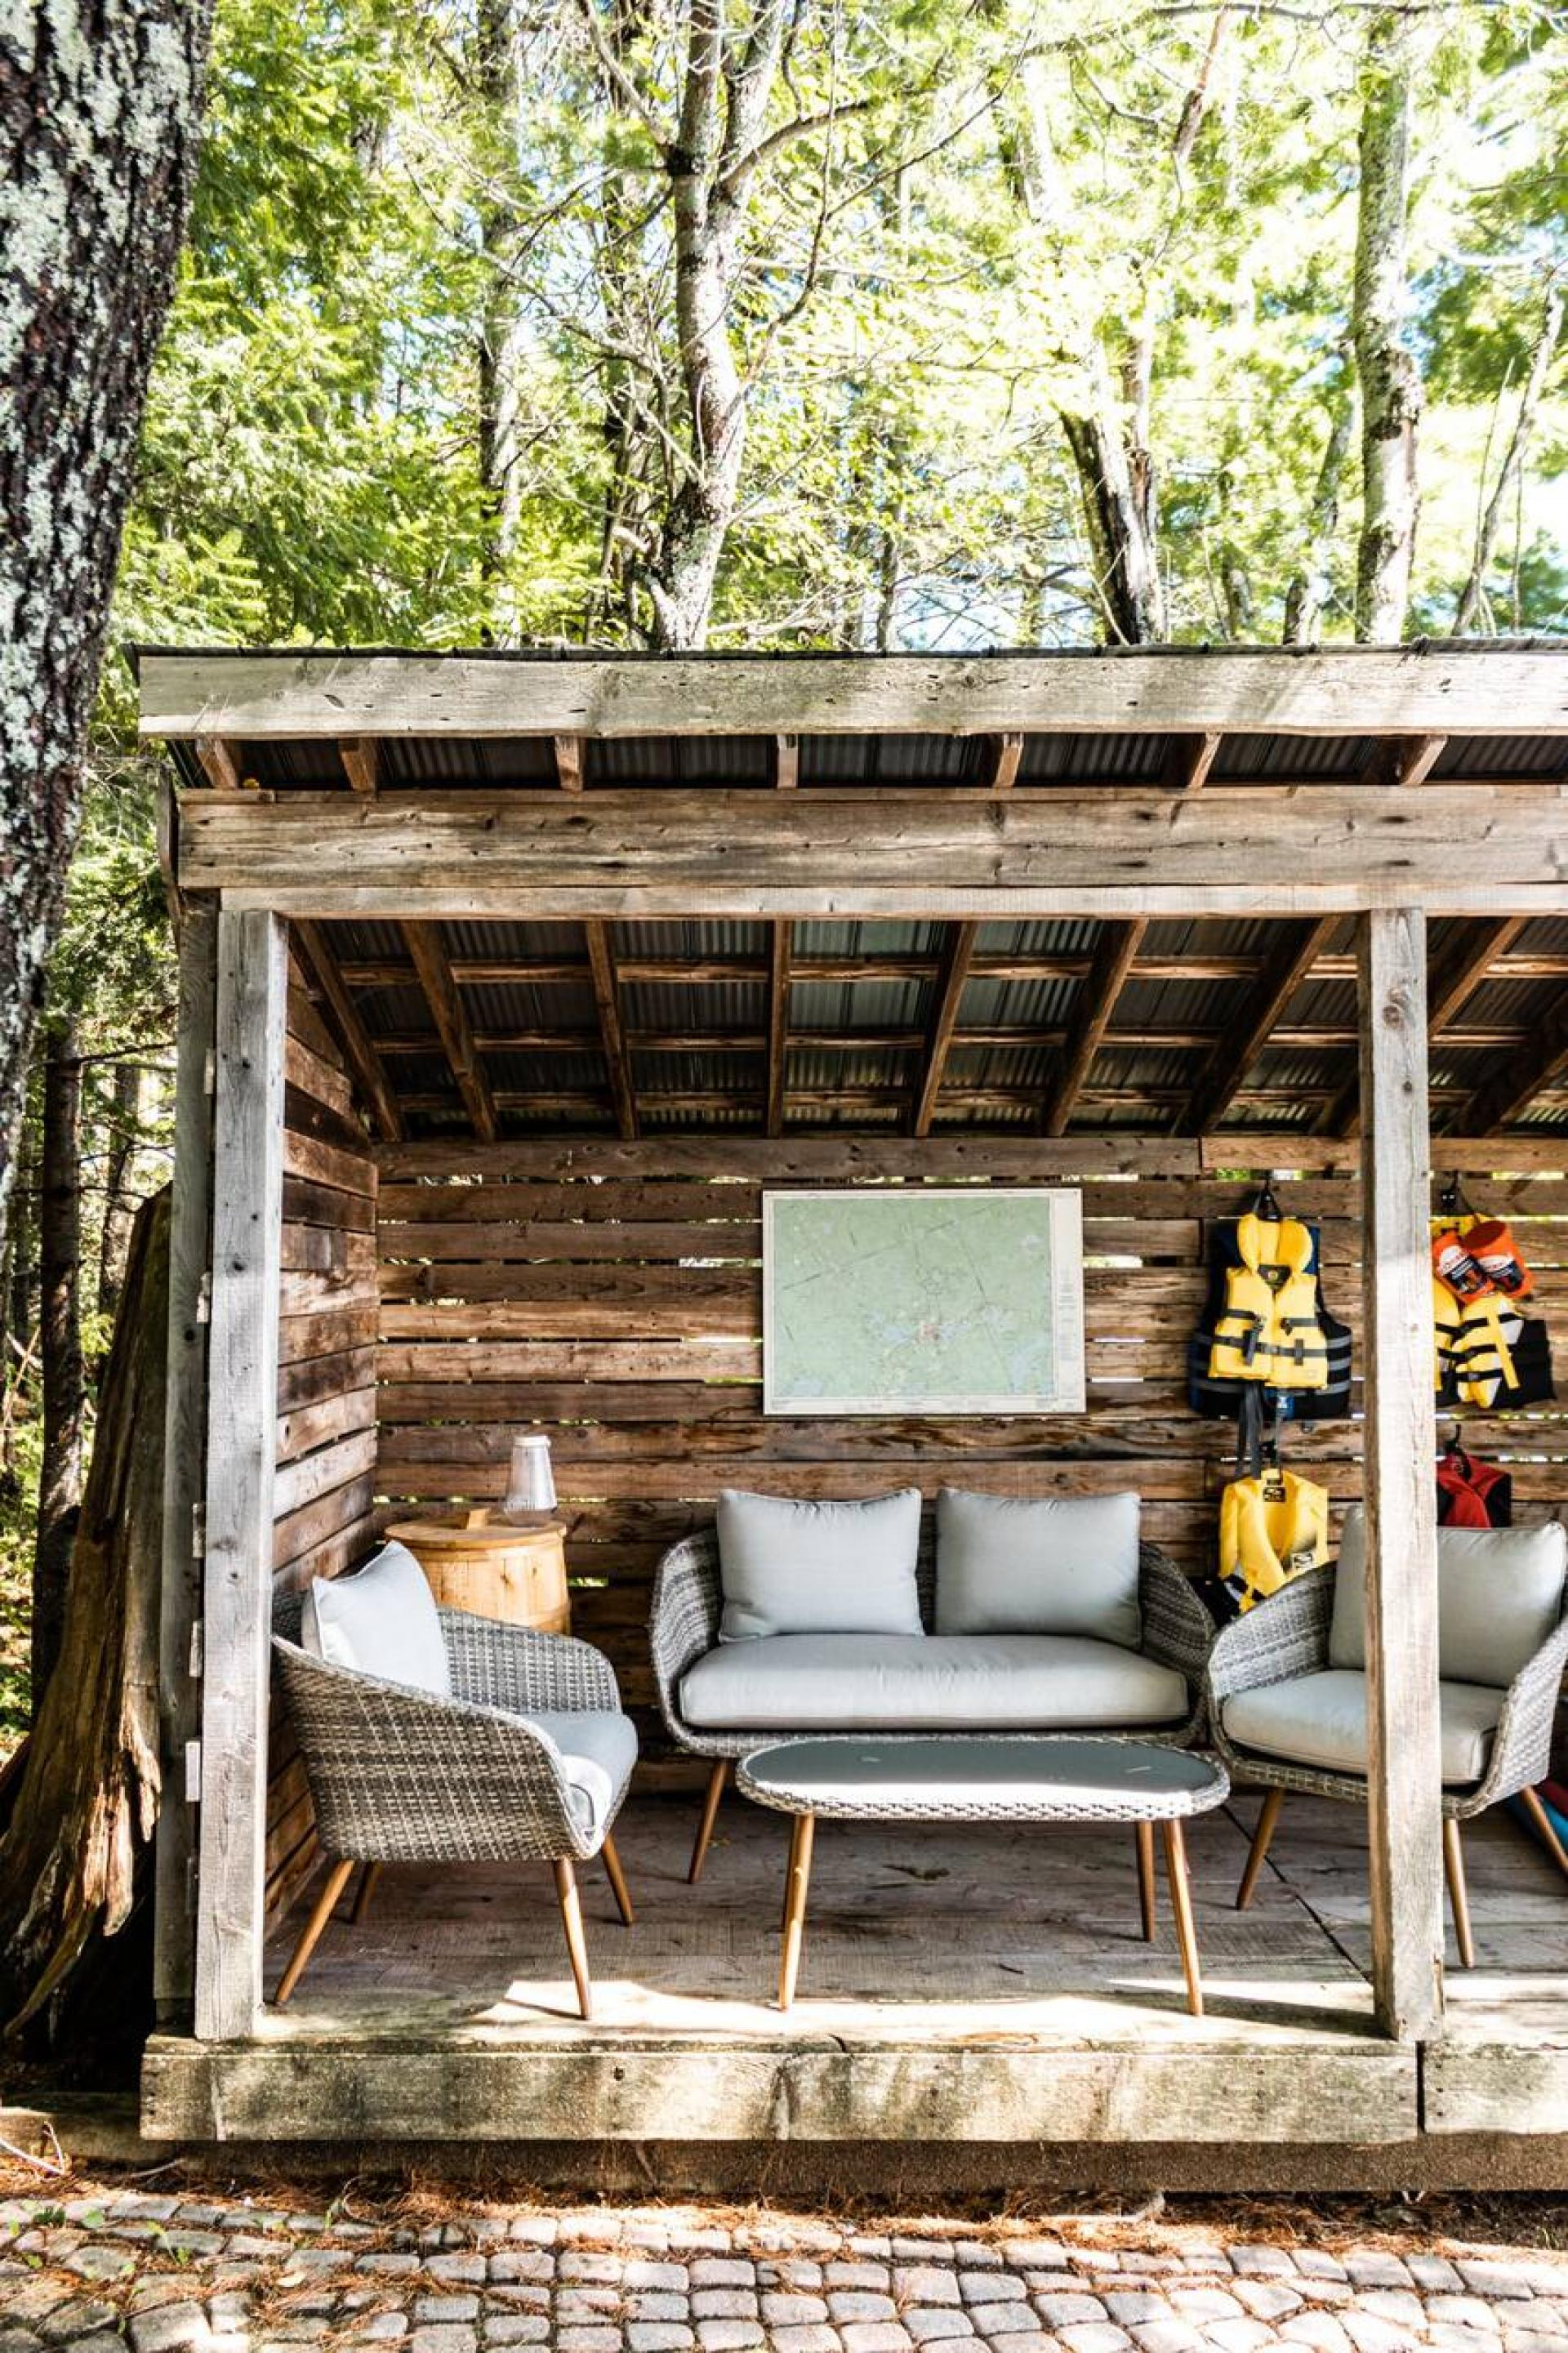 Ontario's coolest cabins to rent | Otter Bay